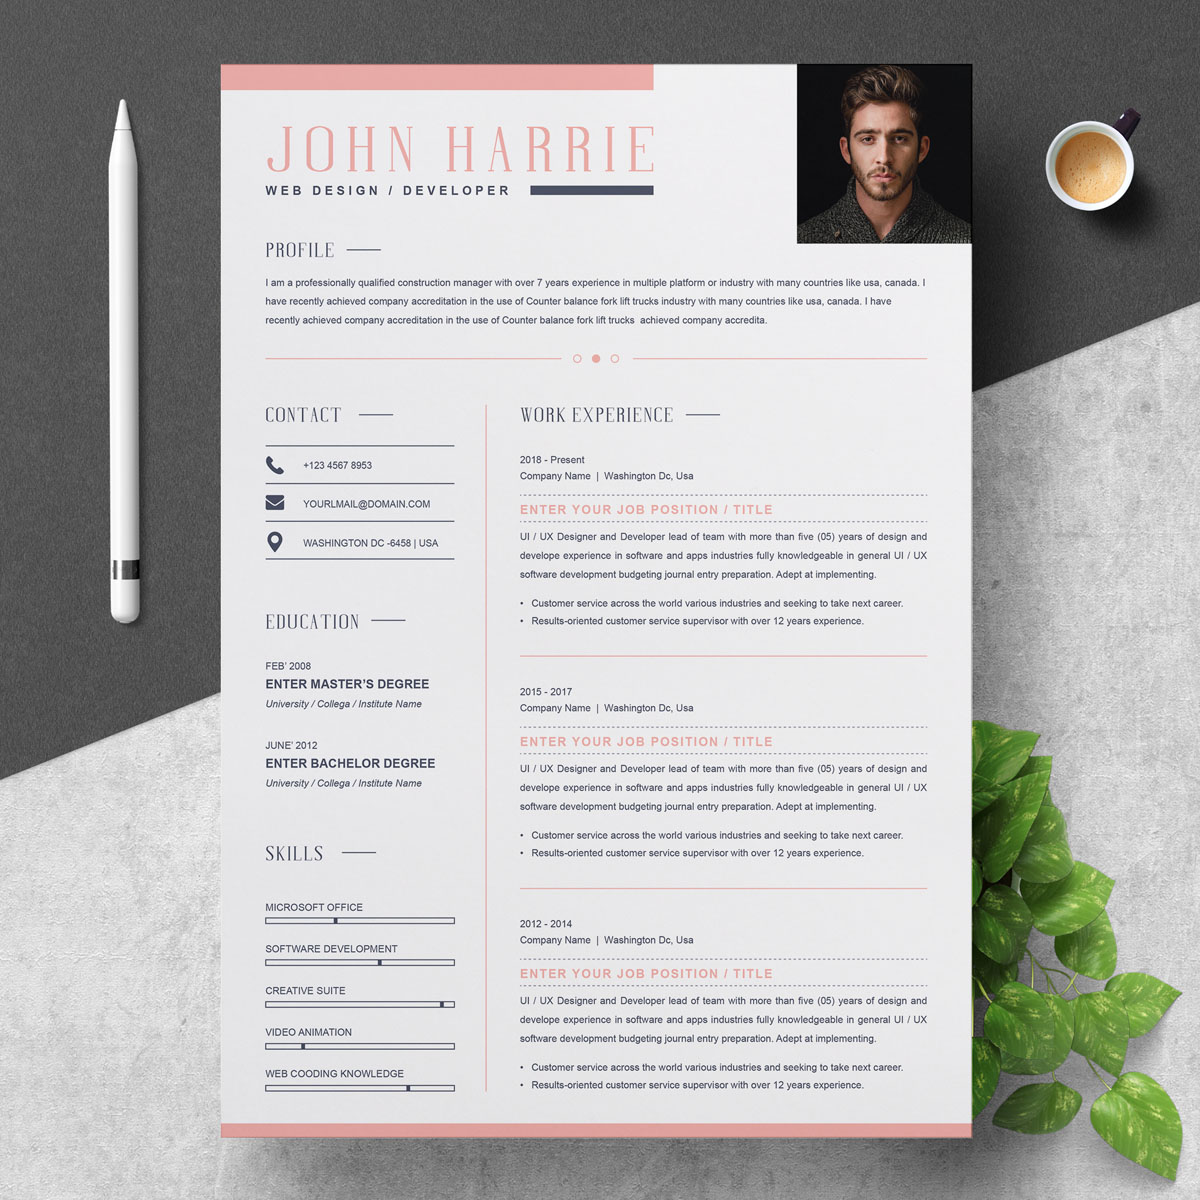 John Harrie Resume Template